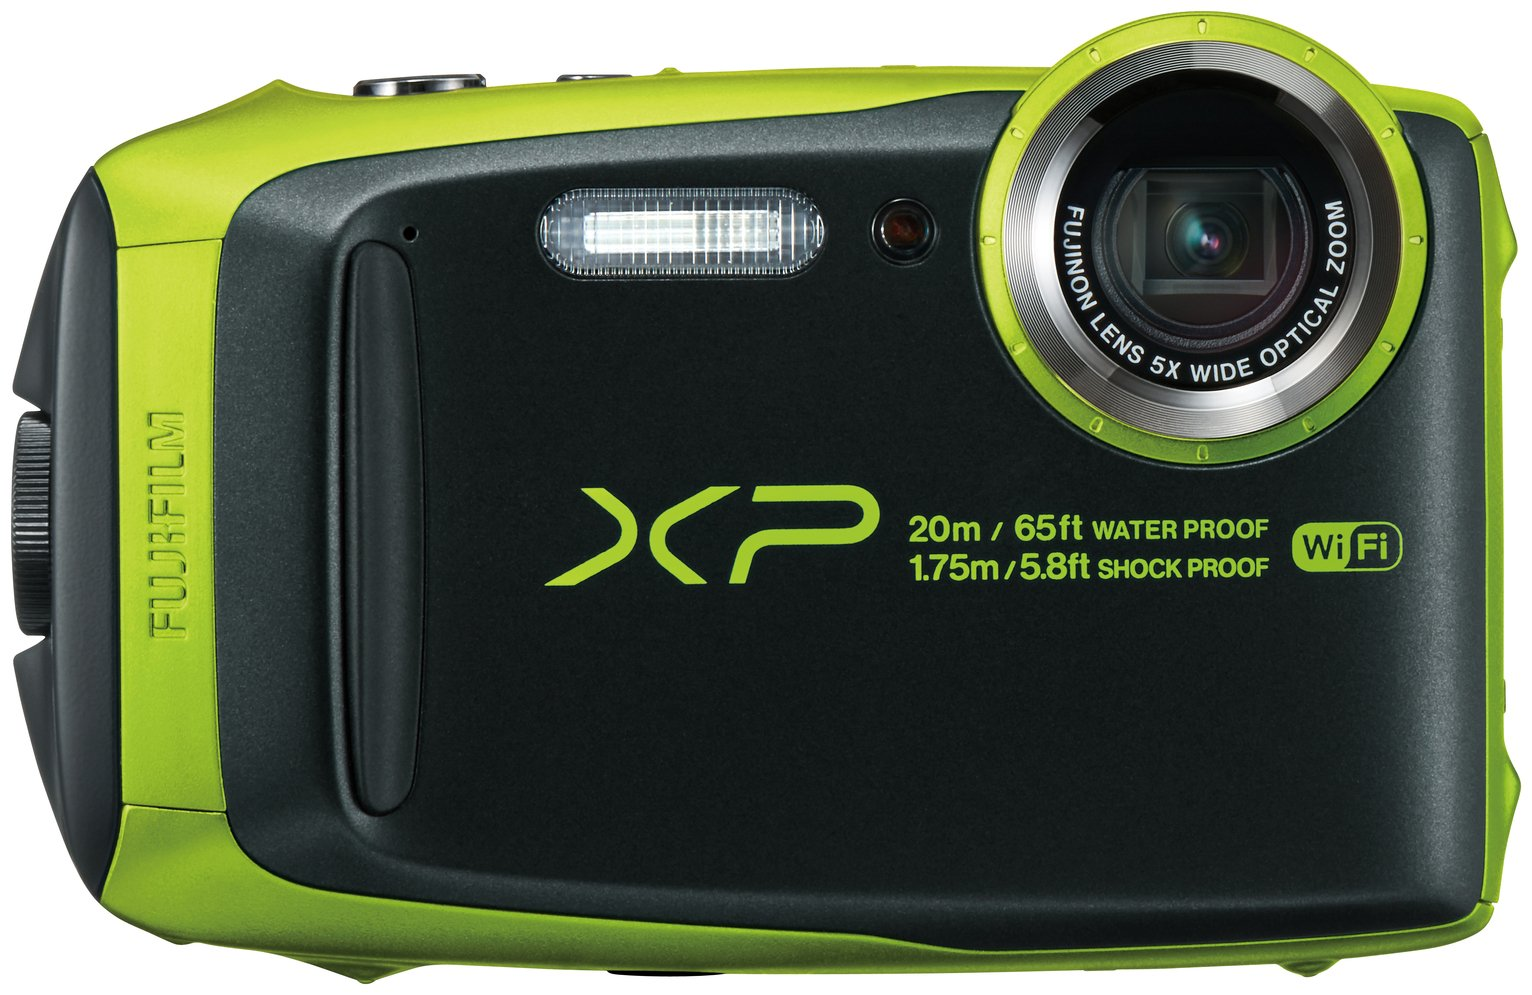 Image of Fujifilm Finepix XP120 Camera - Lime Green